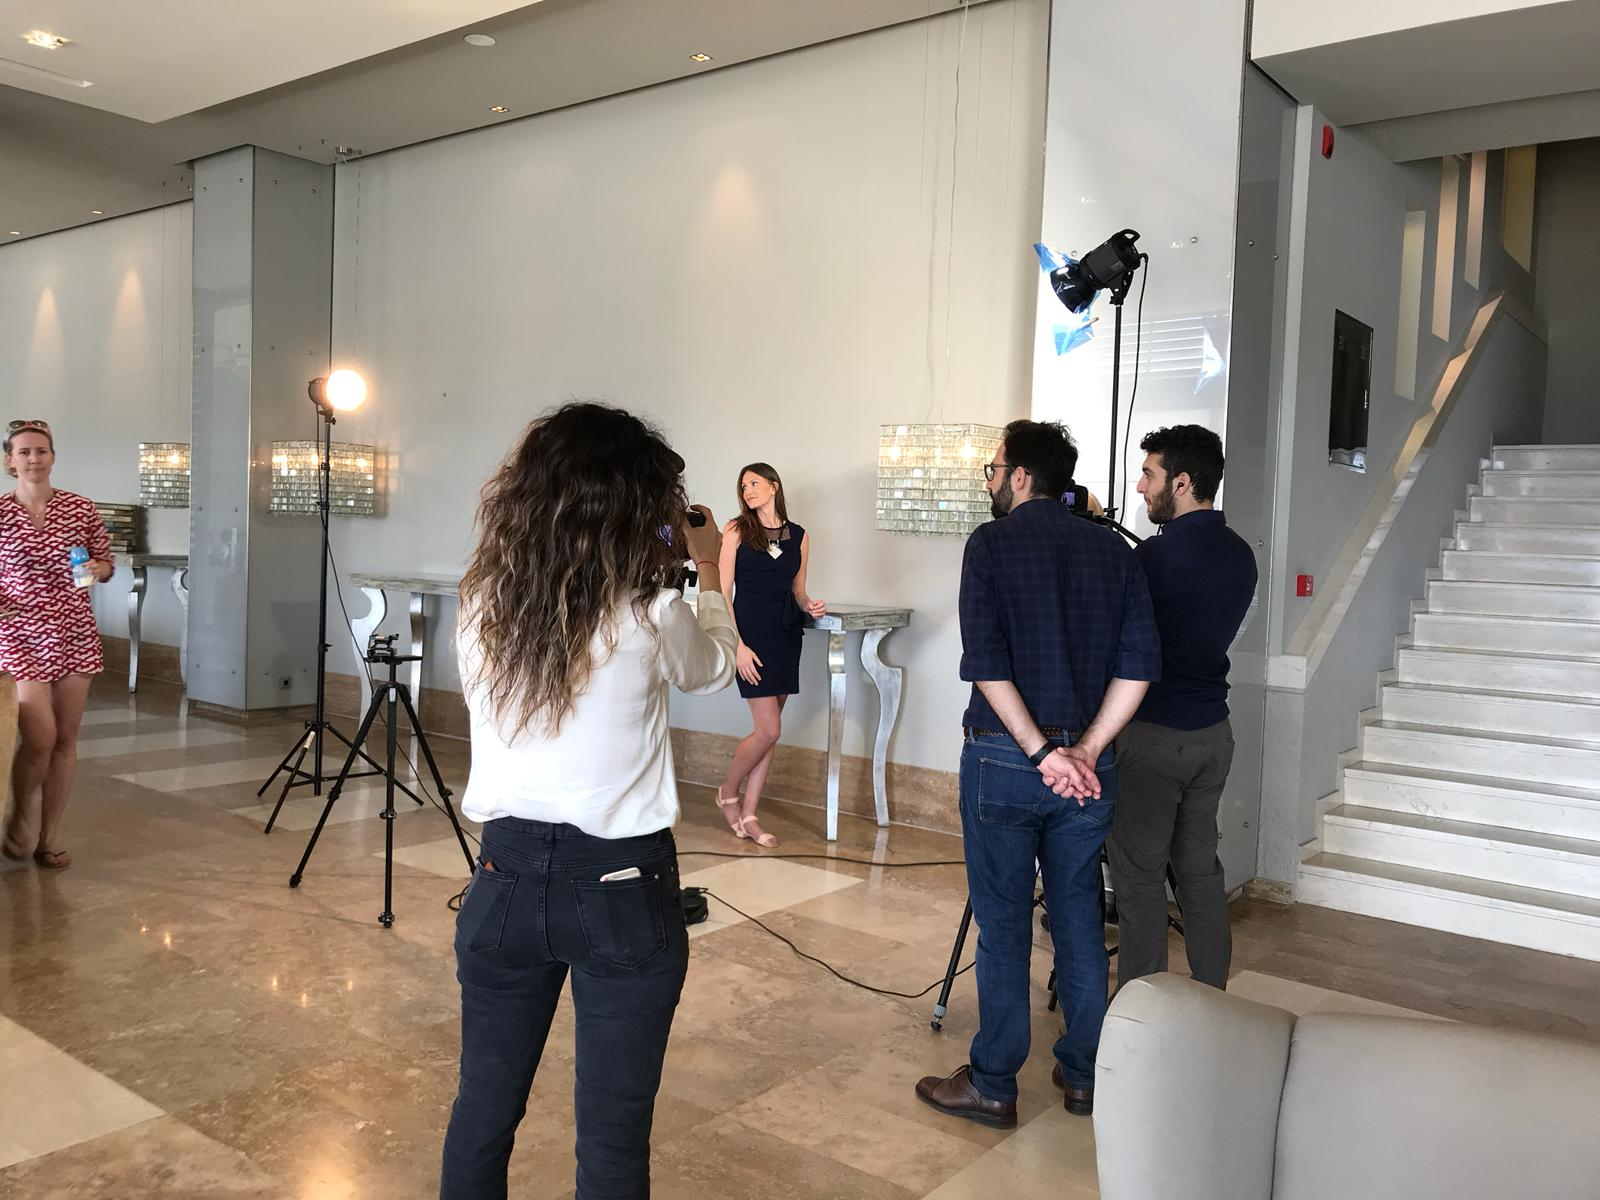 Nutritionist filming for brand consultancy